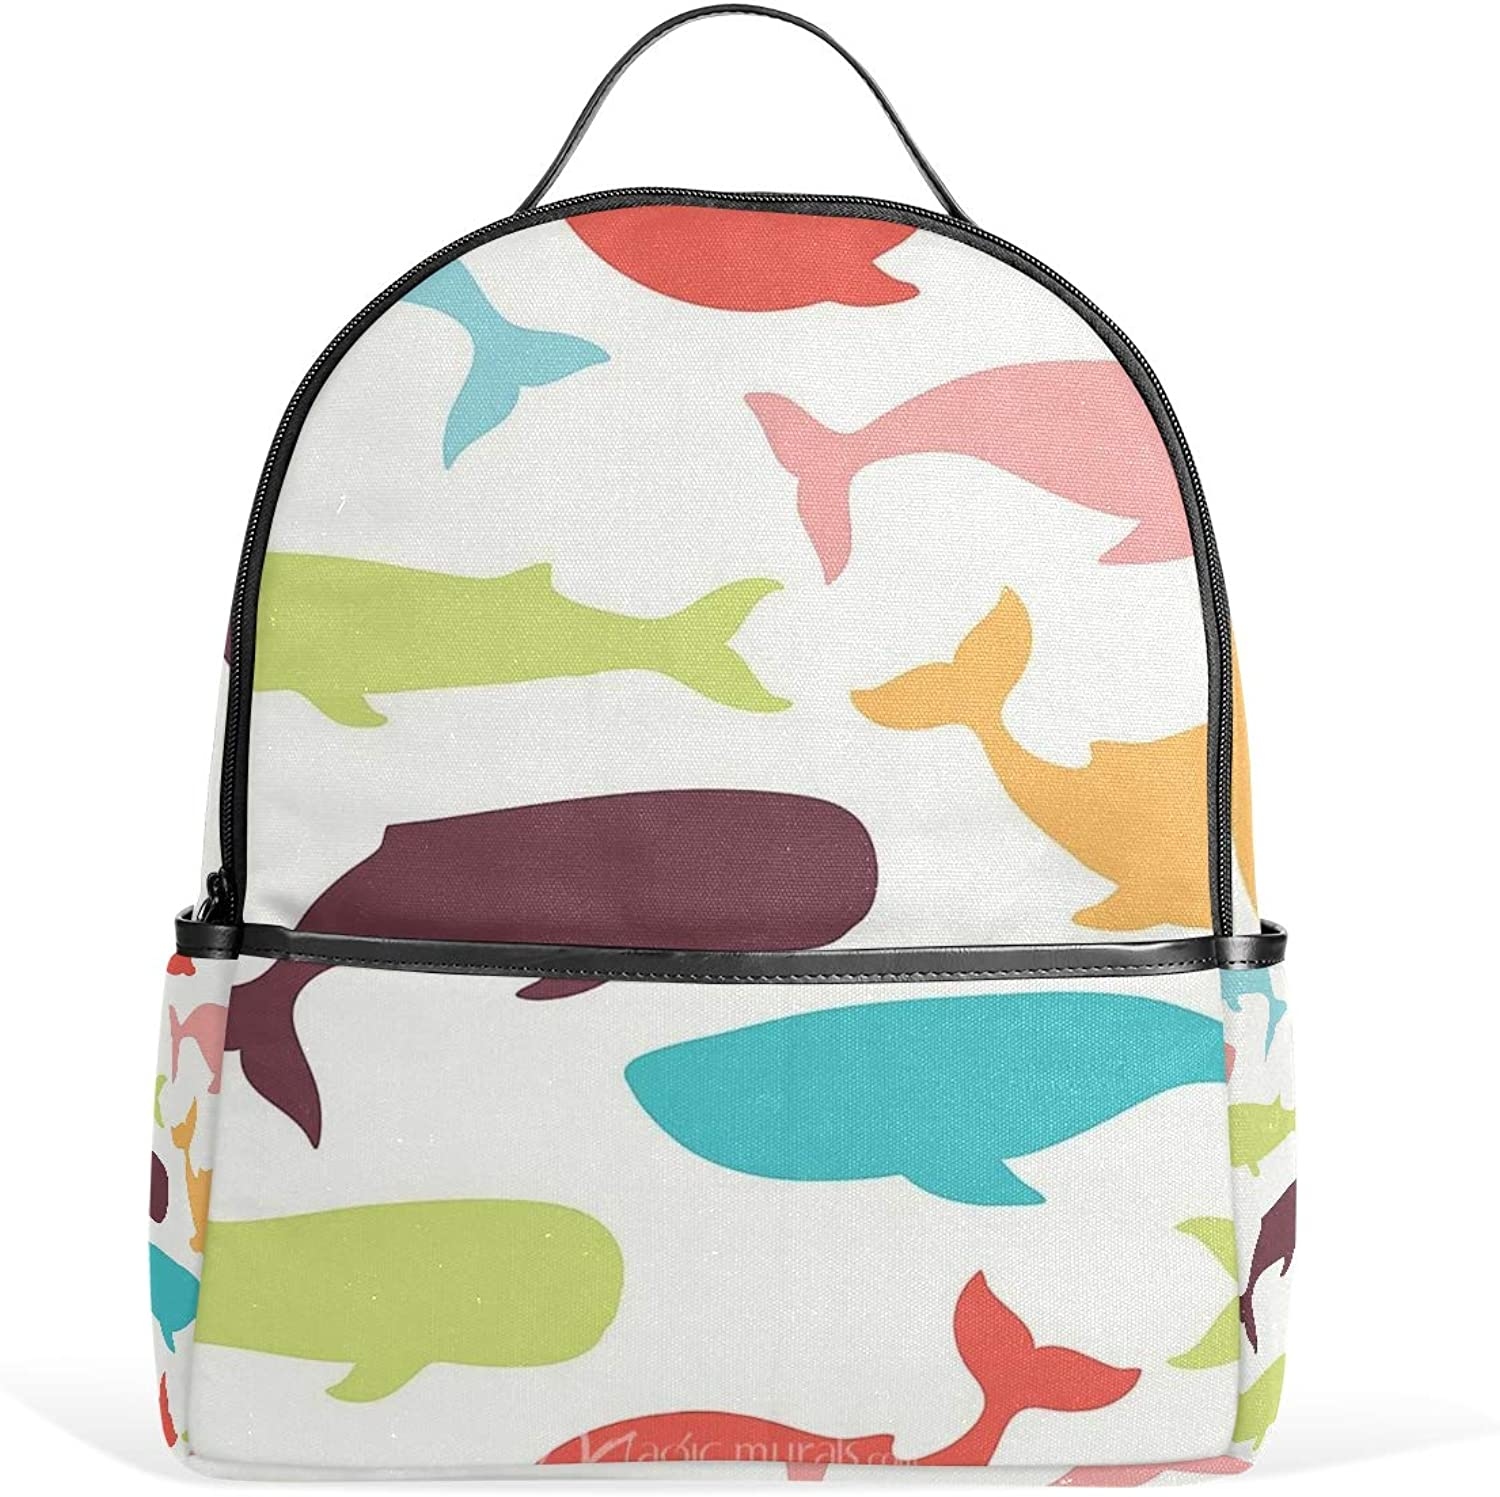 Daypacks & Casual Bags Camping & Hiking Backpack Rucksack Travel Daypack Abstract Rainbow Spiral Flower Colorful Art Book Bag Casual Travel Waterproof